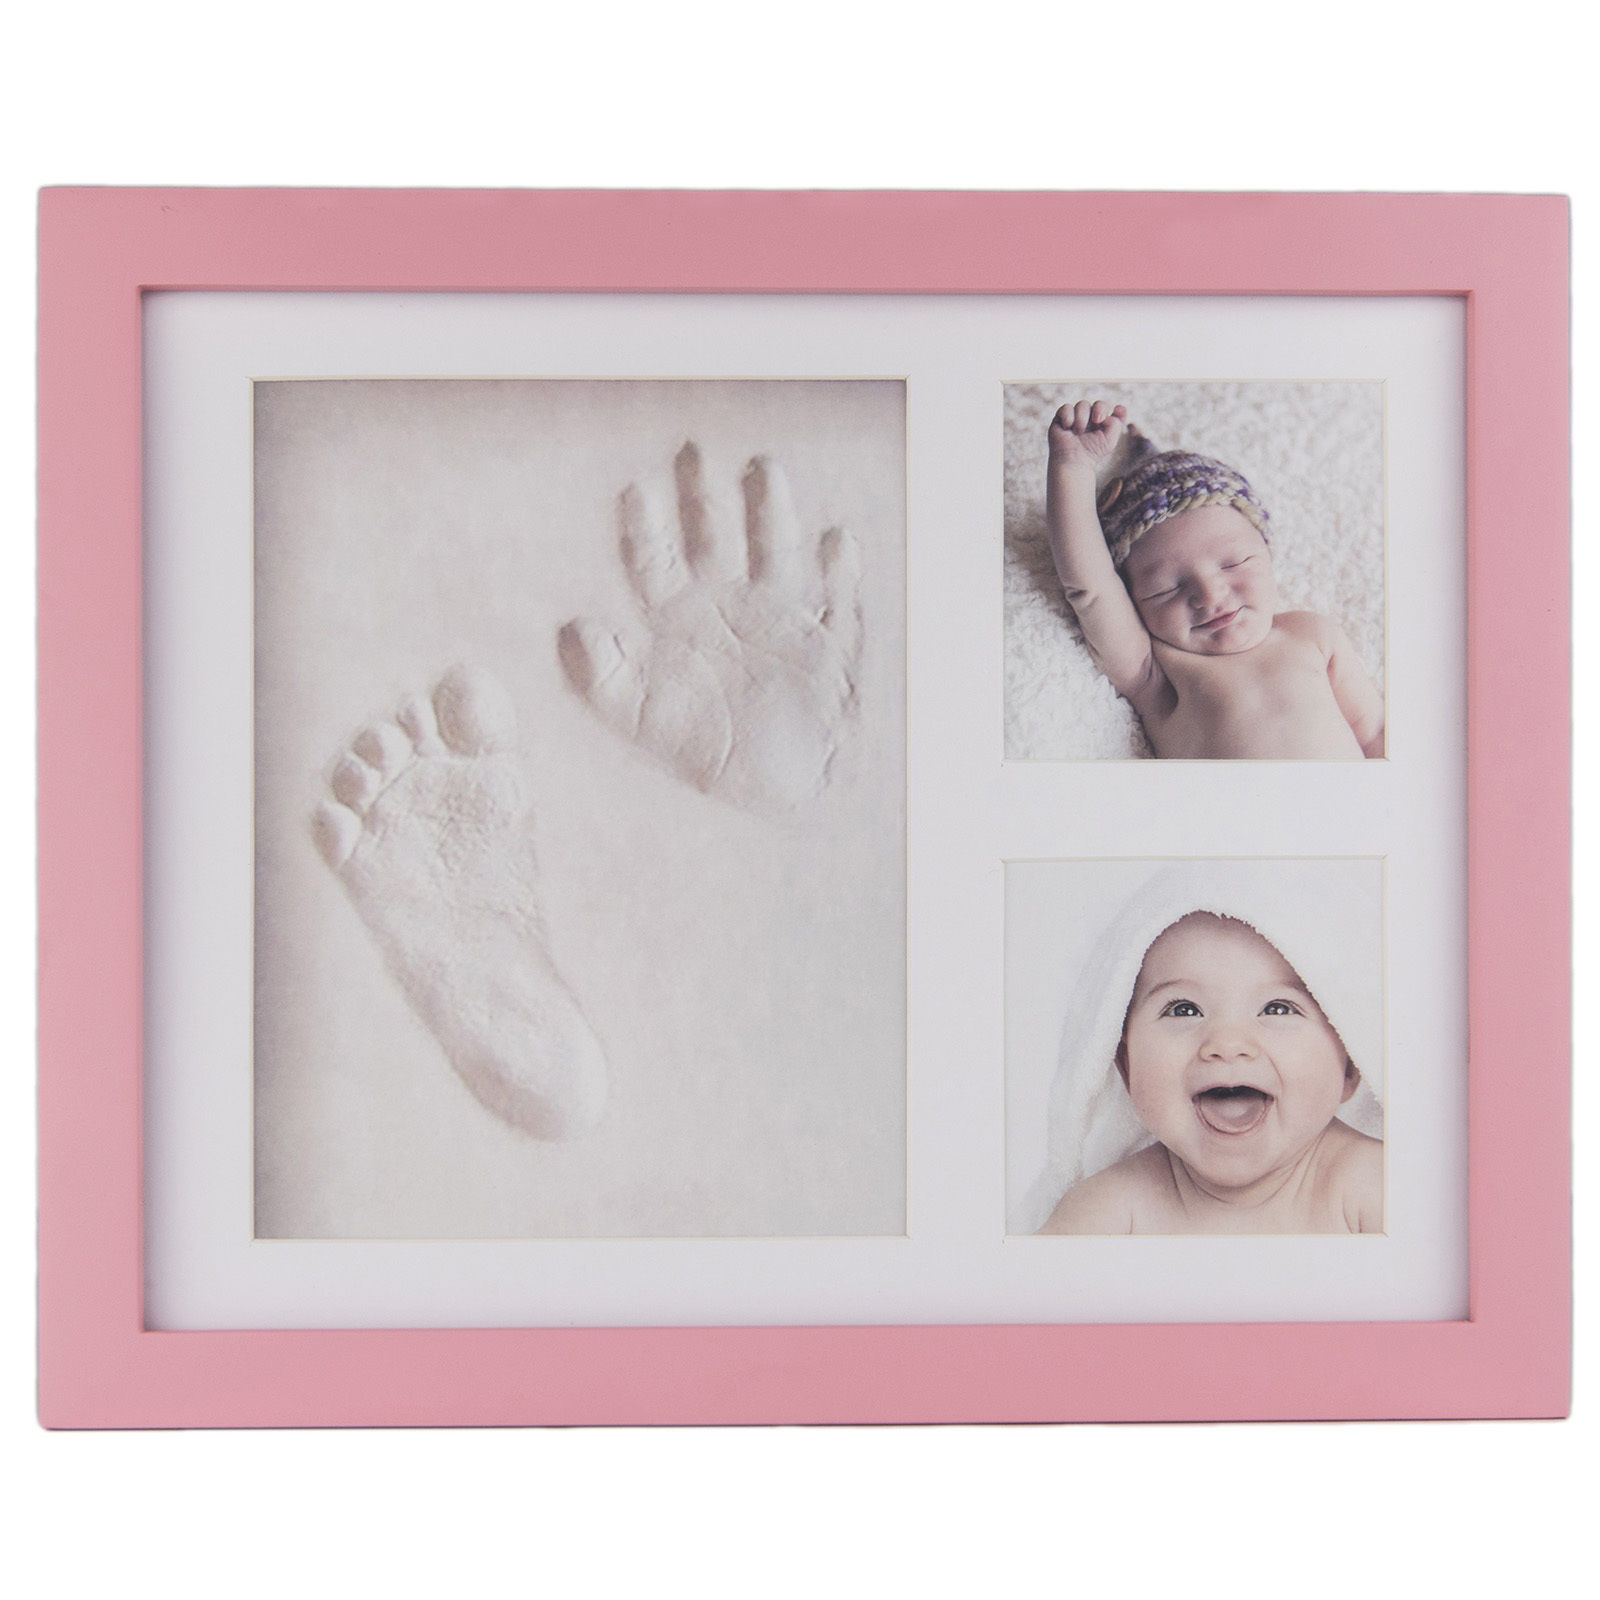 Baby Hand Print Kit For Newborns Baby Gift Baby Photo-Frame Inkpad Cast-Set Ink-Pad-Toys Imprint-Kit Storage Inkless Memento